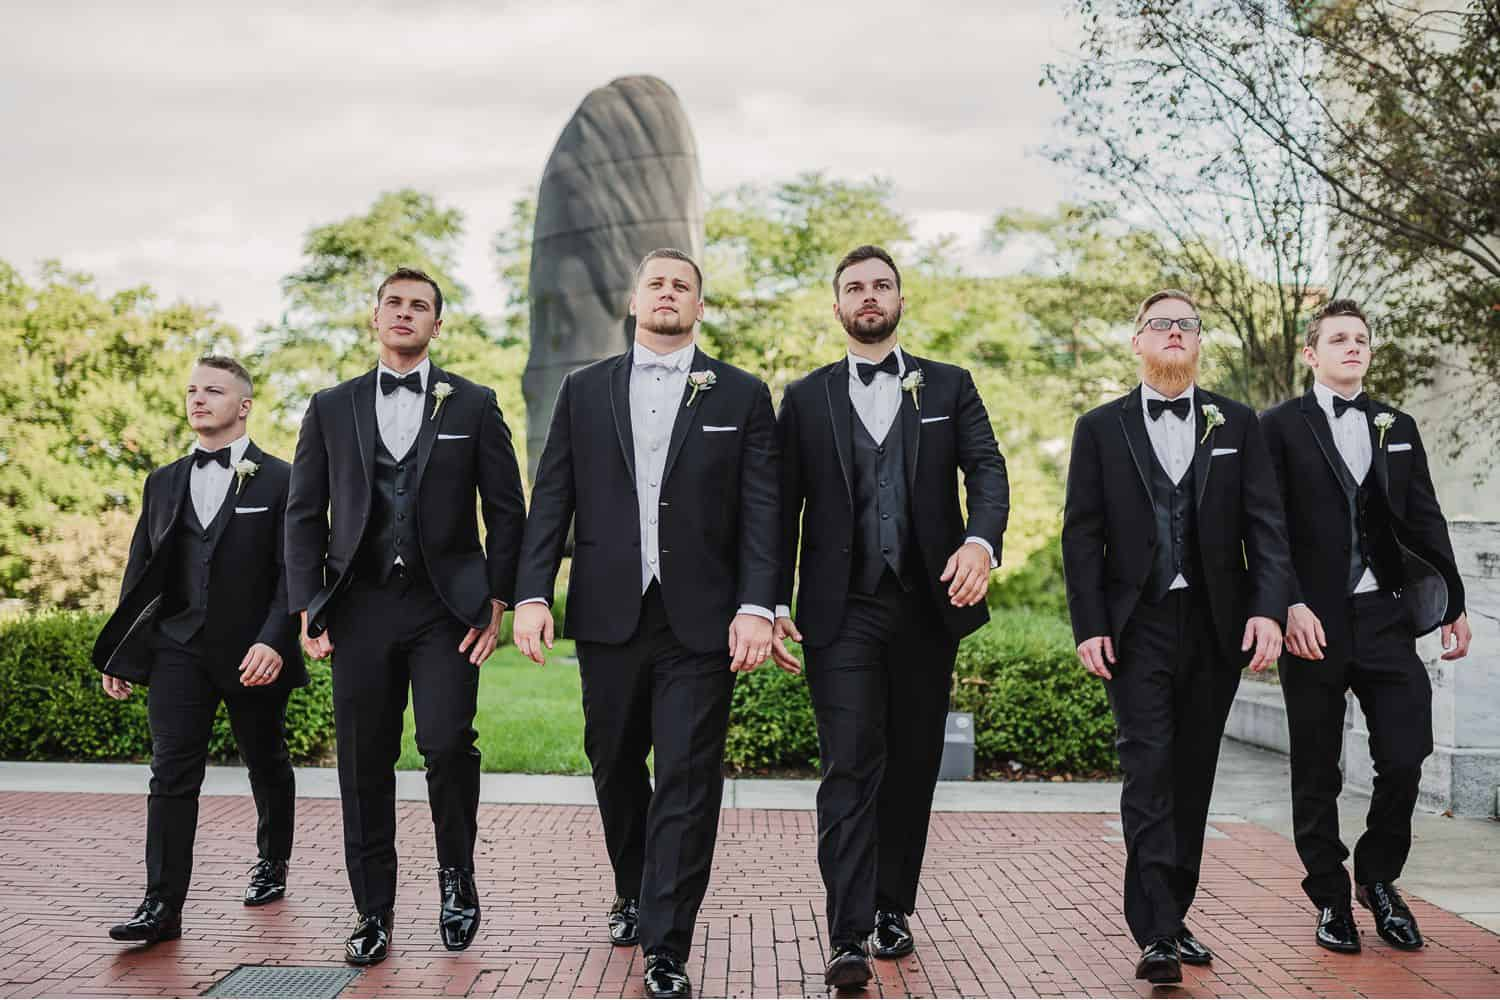 A row of groomsmen in black suits walk across a brick courtyard.